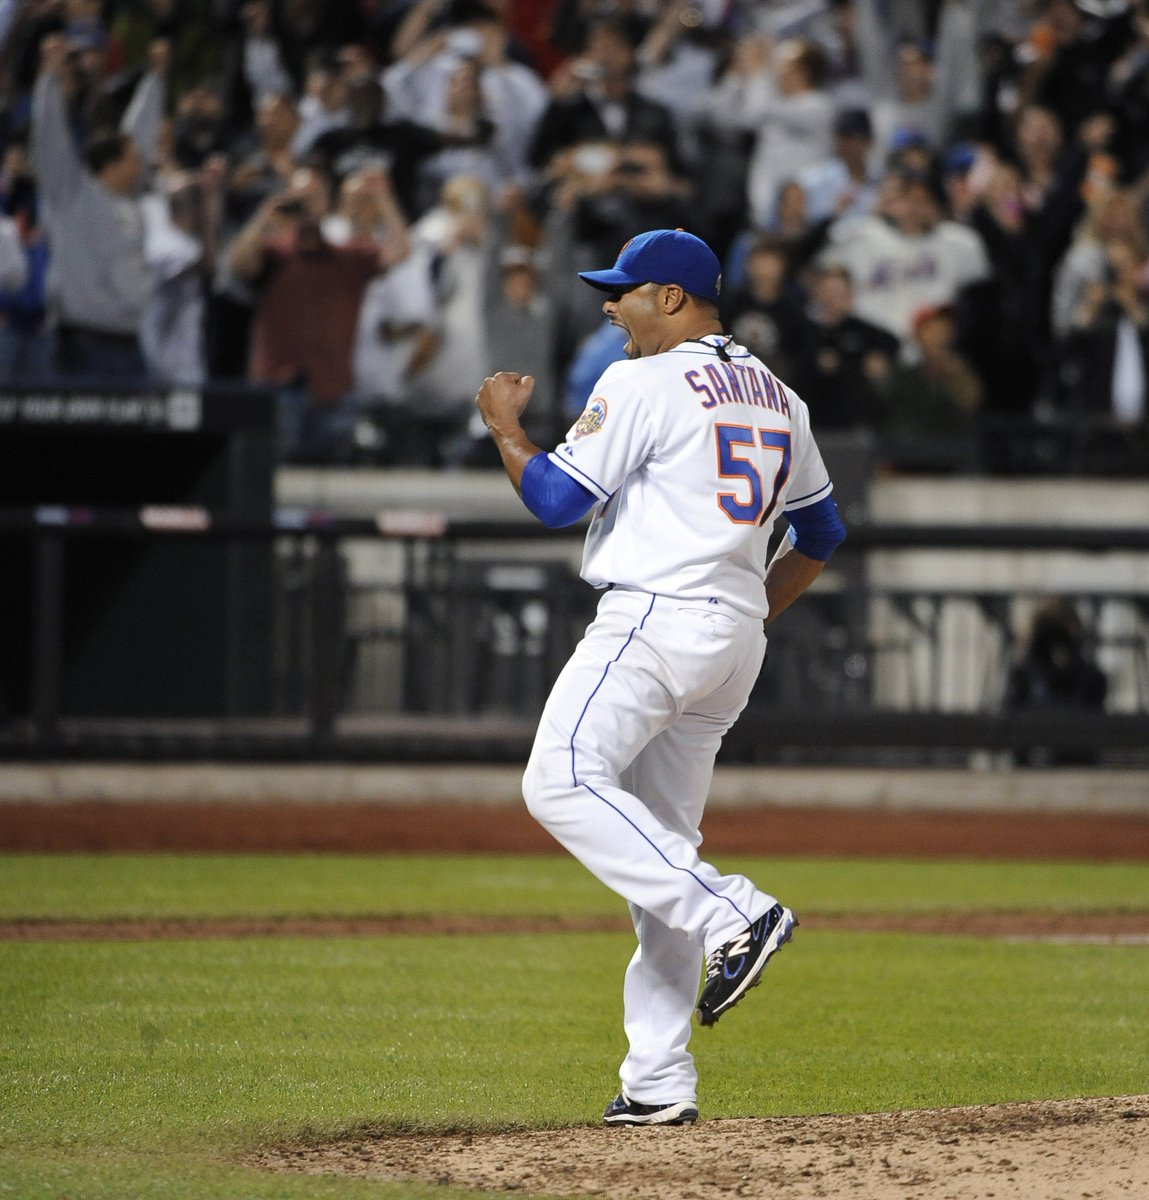 f3e1aa930c2 5 years ago today, Johan Santana threw the 1st no-hitter in @Mets history  (134 pitches). He made just 10 starts the rest of his  career.pic.twitter.com/ ...